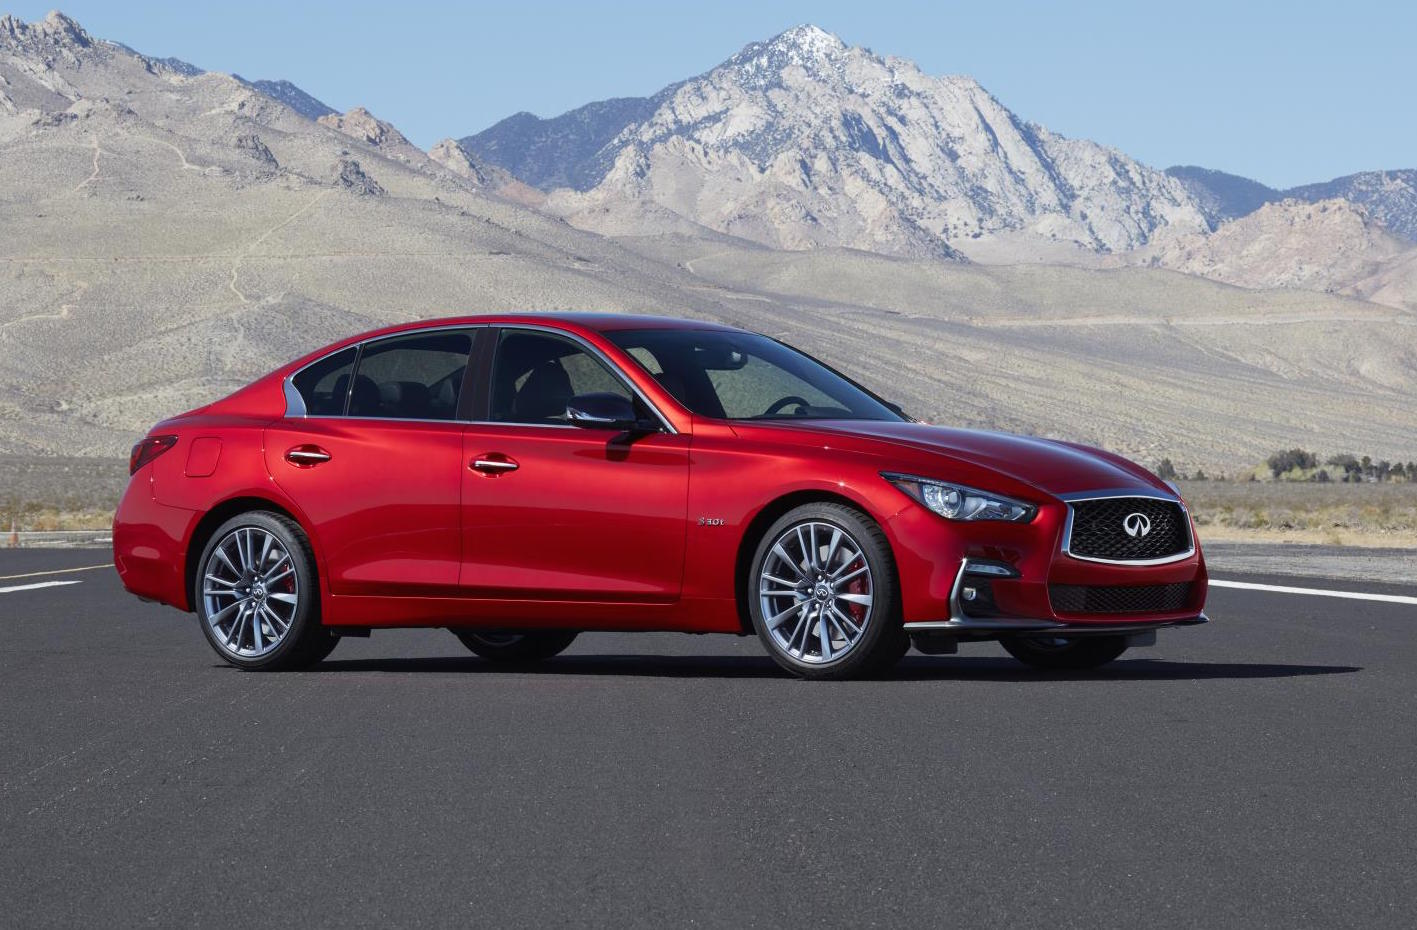 2018 infiniti q50 debuts at geneva with mild facelift. Black Bedroom Furniture Sets. Home Design Ideas